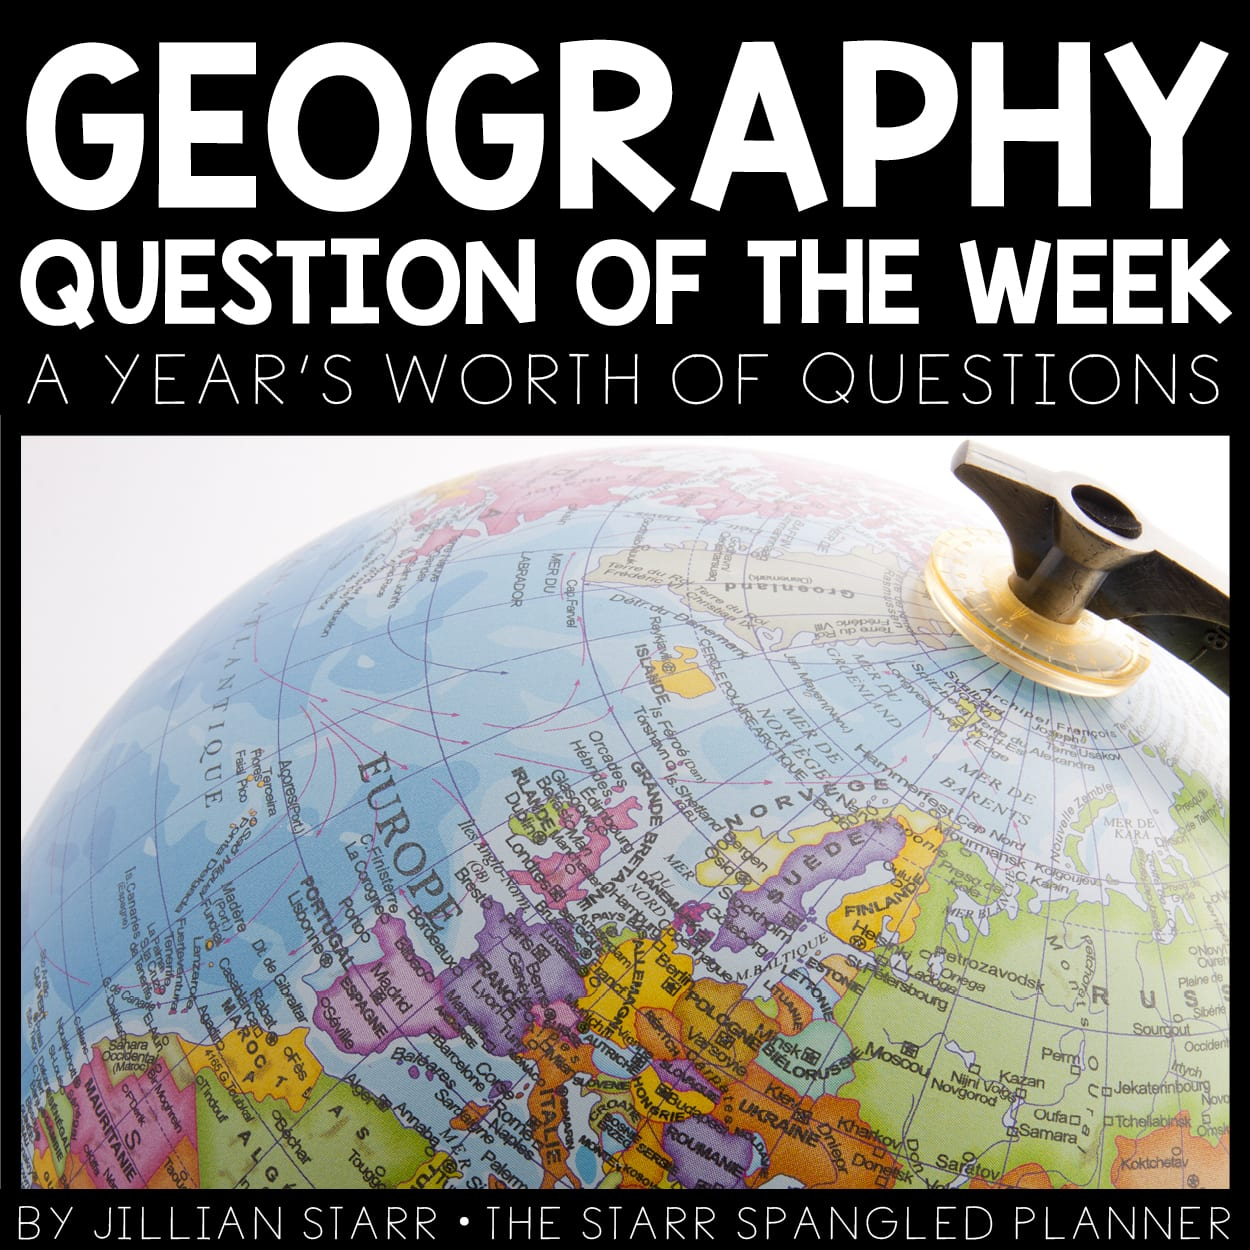 Geography Question of the Week to get students engaged in learning about geography, maps, and the world.